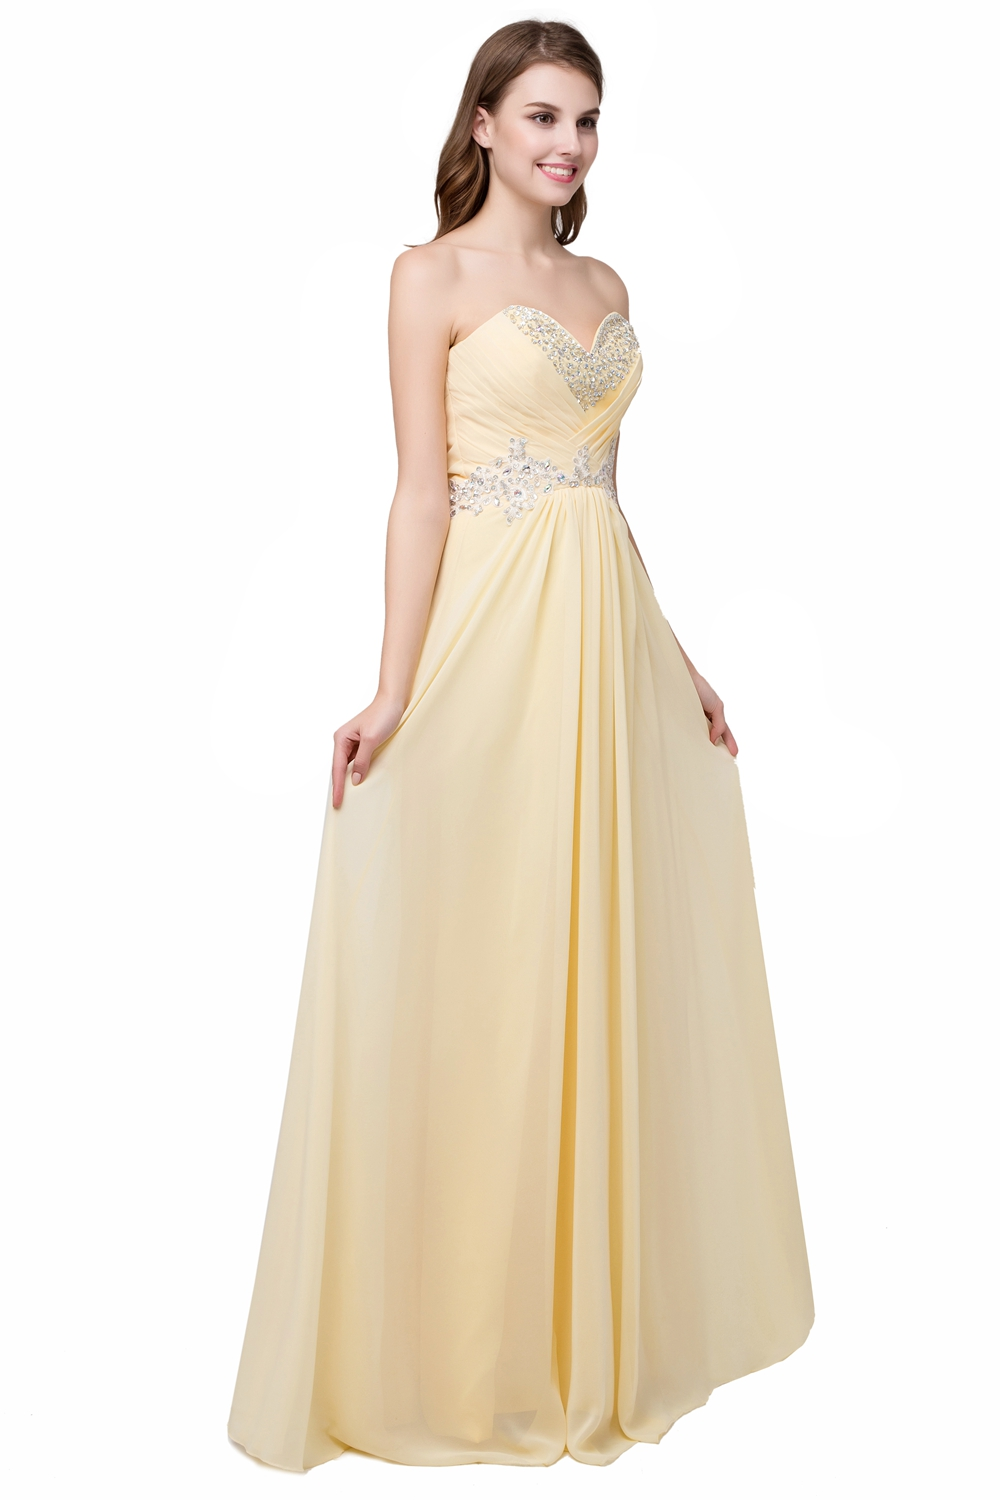 Cheap bridesmaid dresses under 50 all dress for Cheap plus size wedding dresses under 50